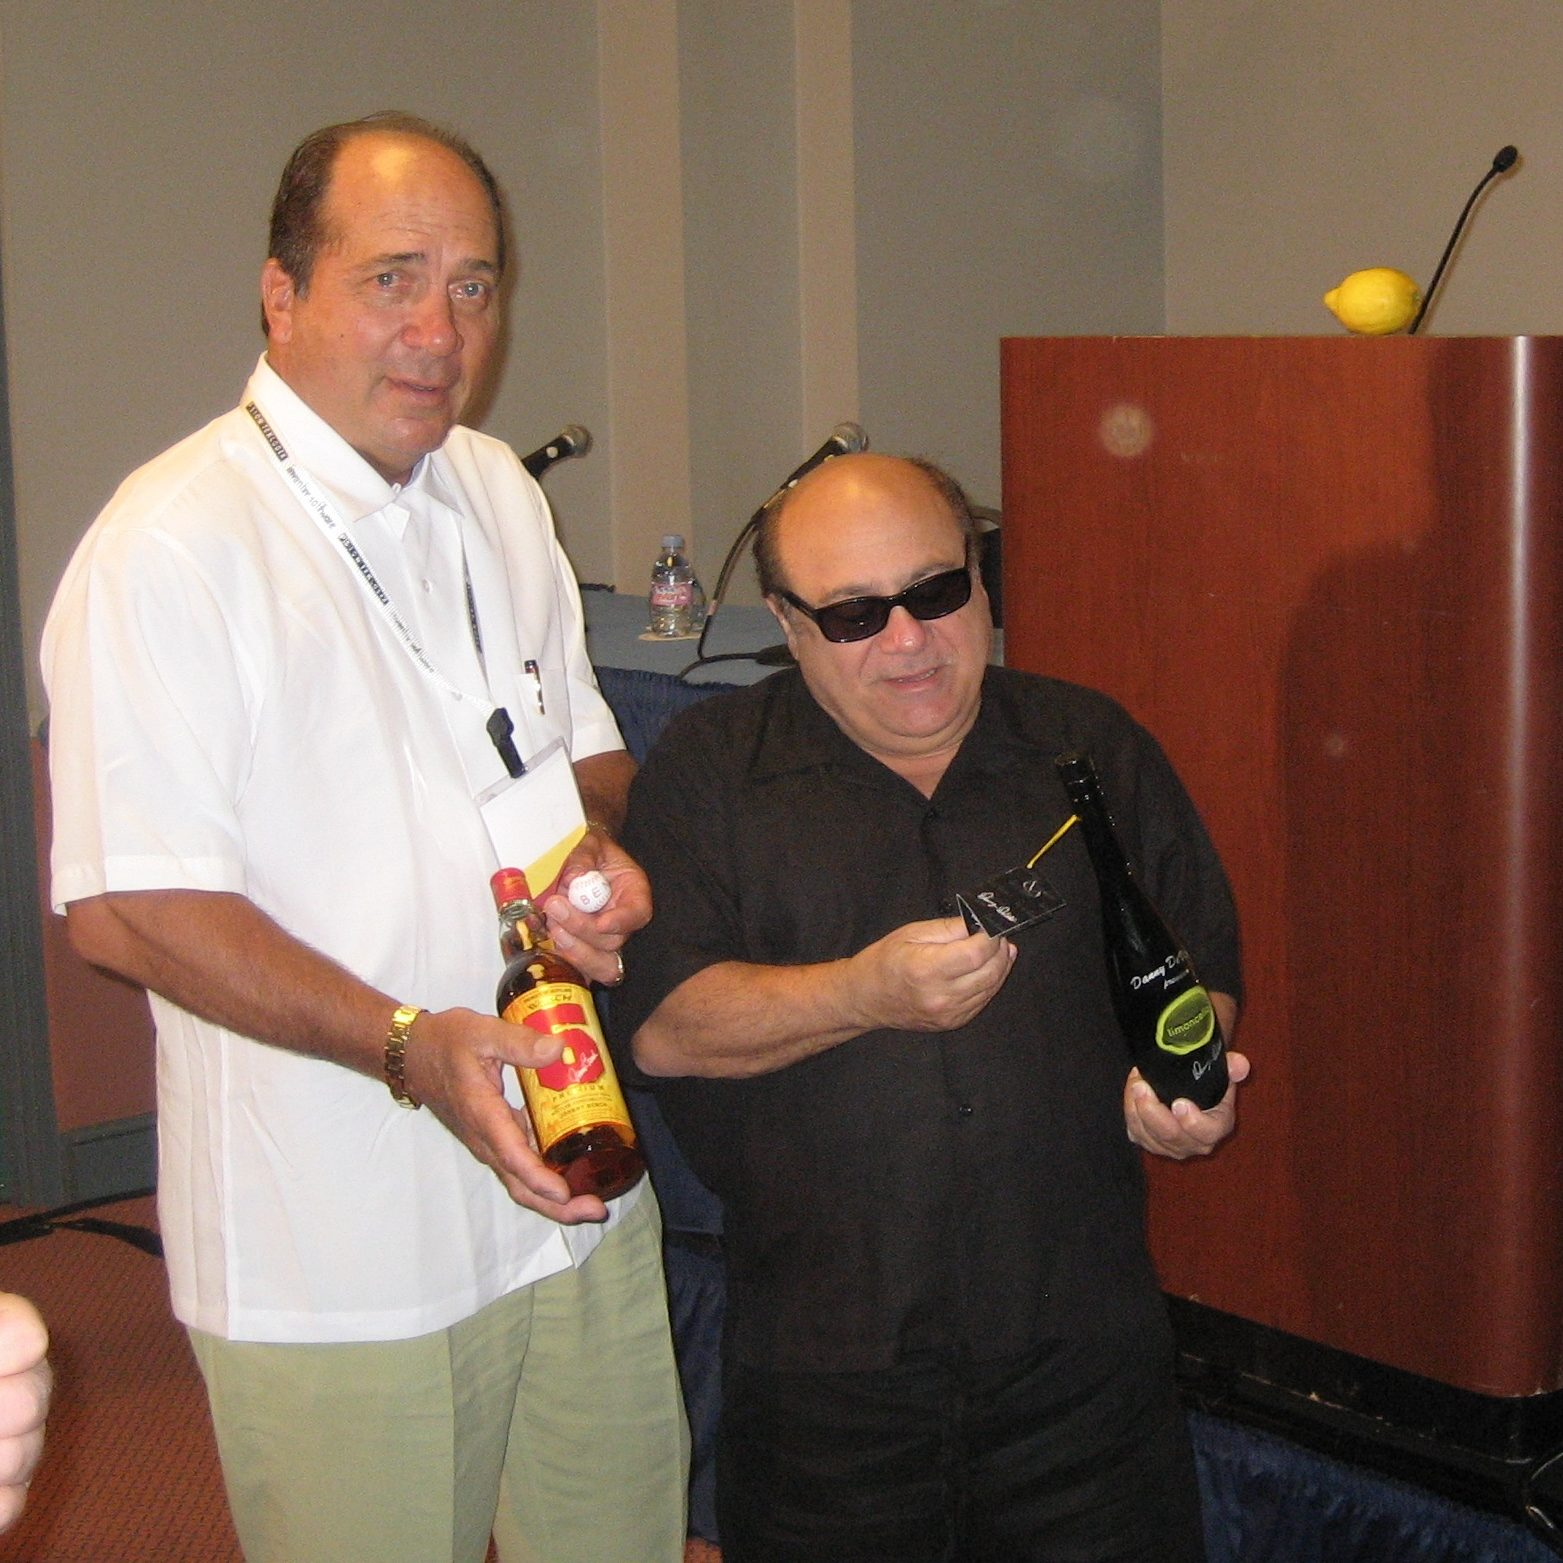 Johnny Bench - Danny DeVito - Copy